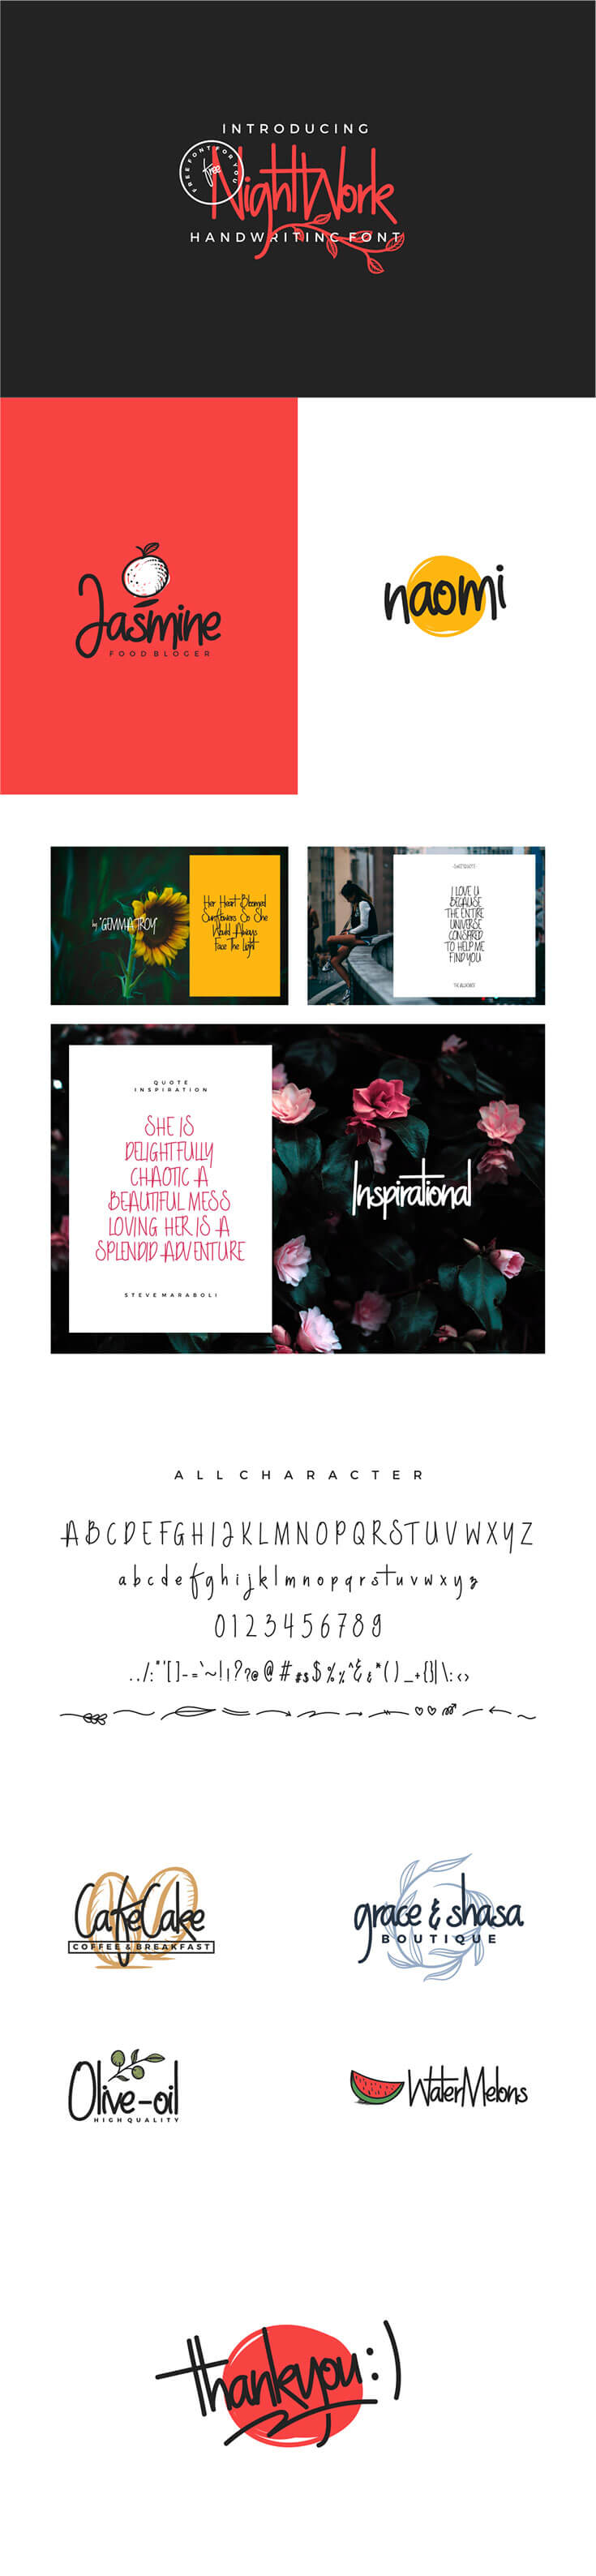 #Free Nightwork #Handwriting #Font is coming from the designer Holis Majid with soft handwriting style. This font has a feminine and cute character suited to the food business, food blogger, title, quote, flyers, posters, brochures, quotes, blog titles, etc.